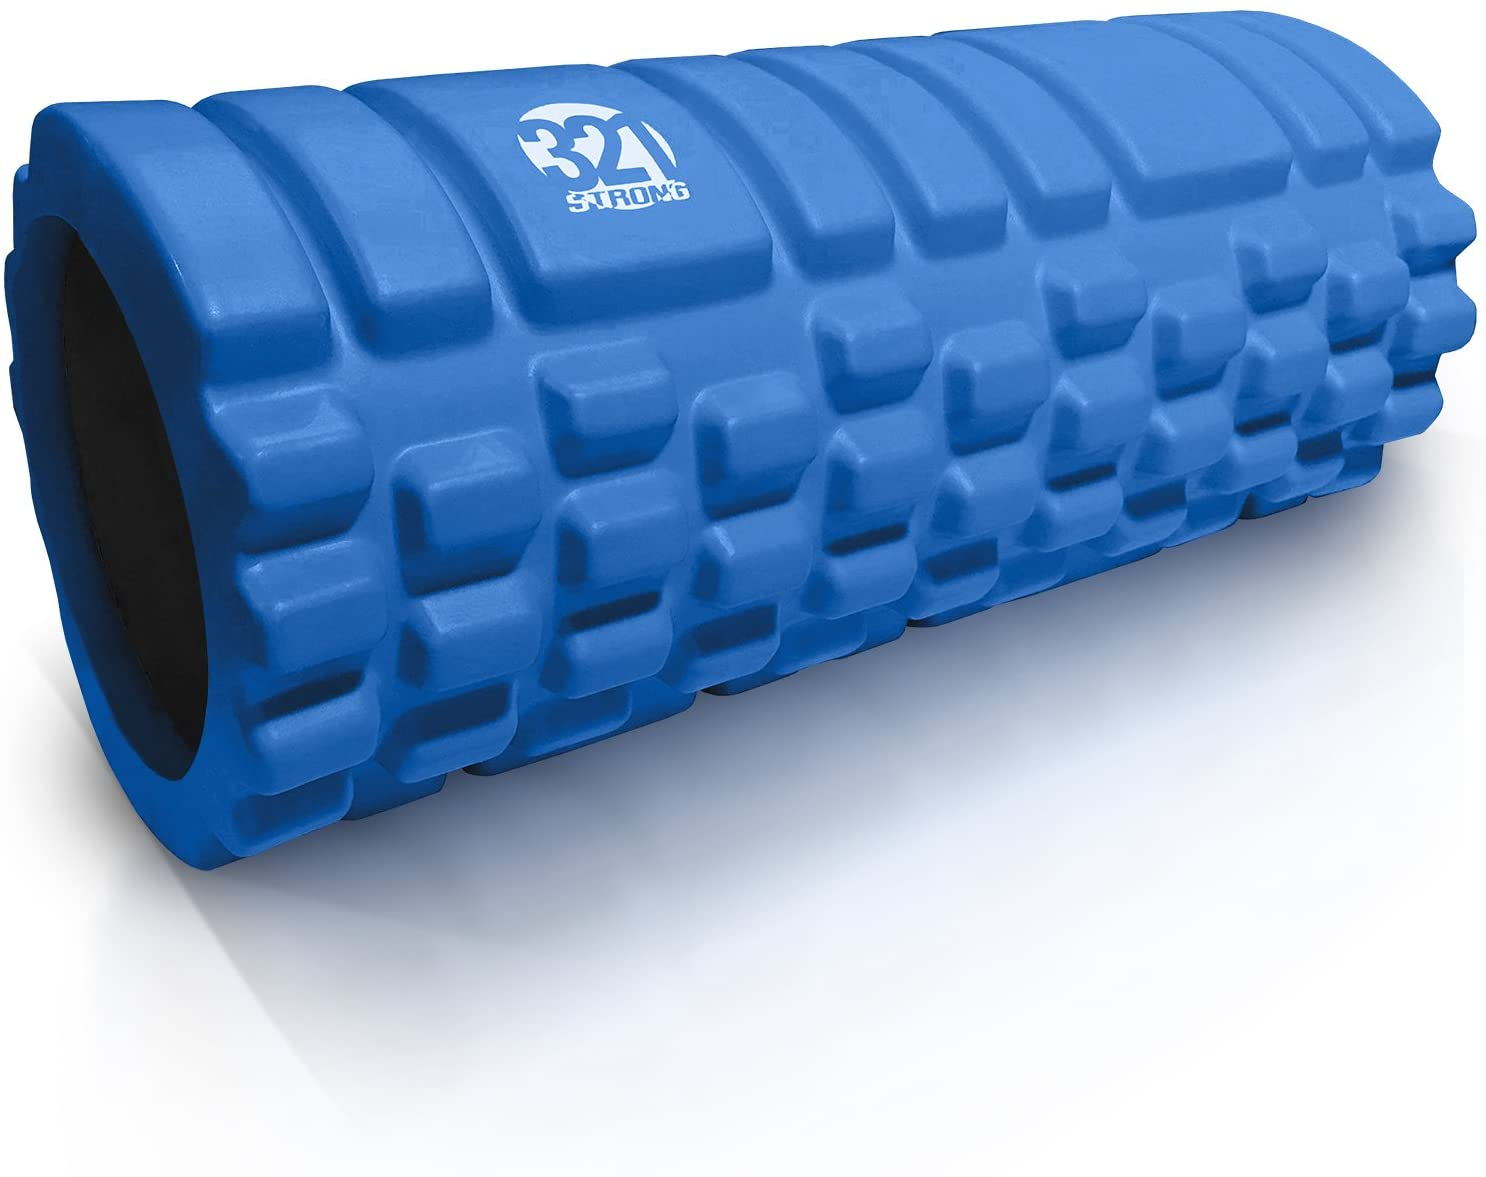 321 strong foam roller recovery aid